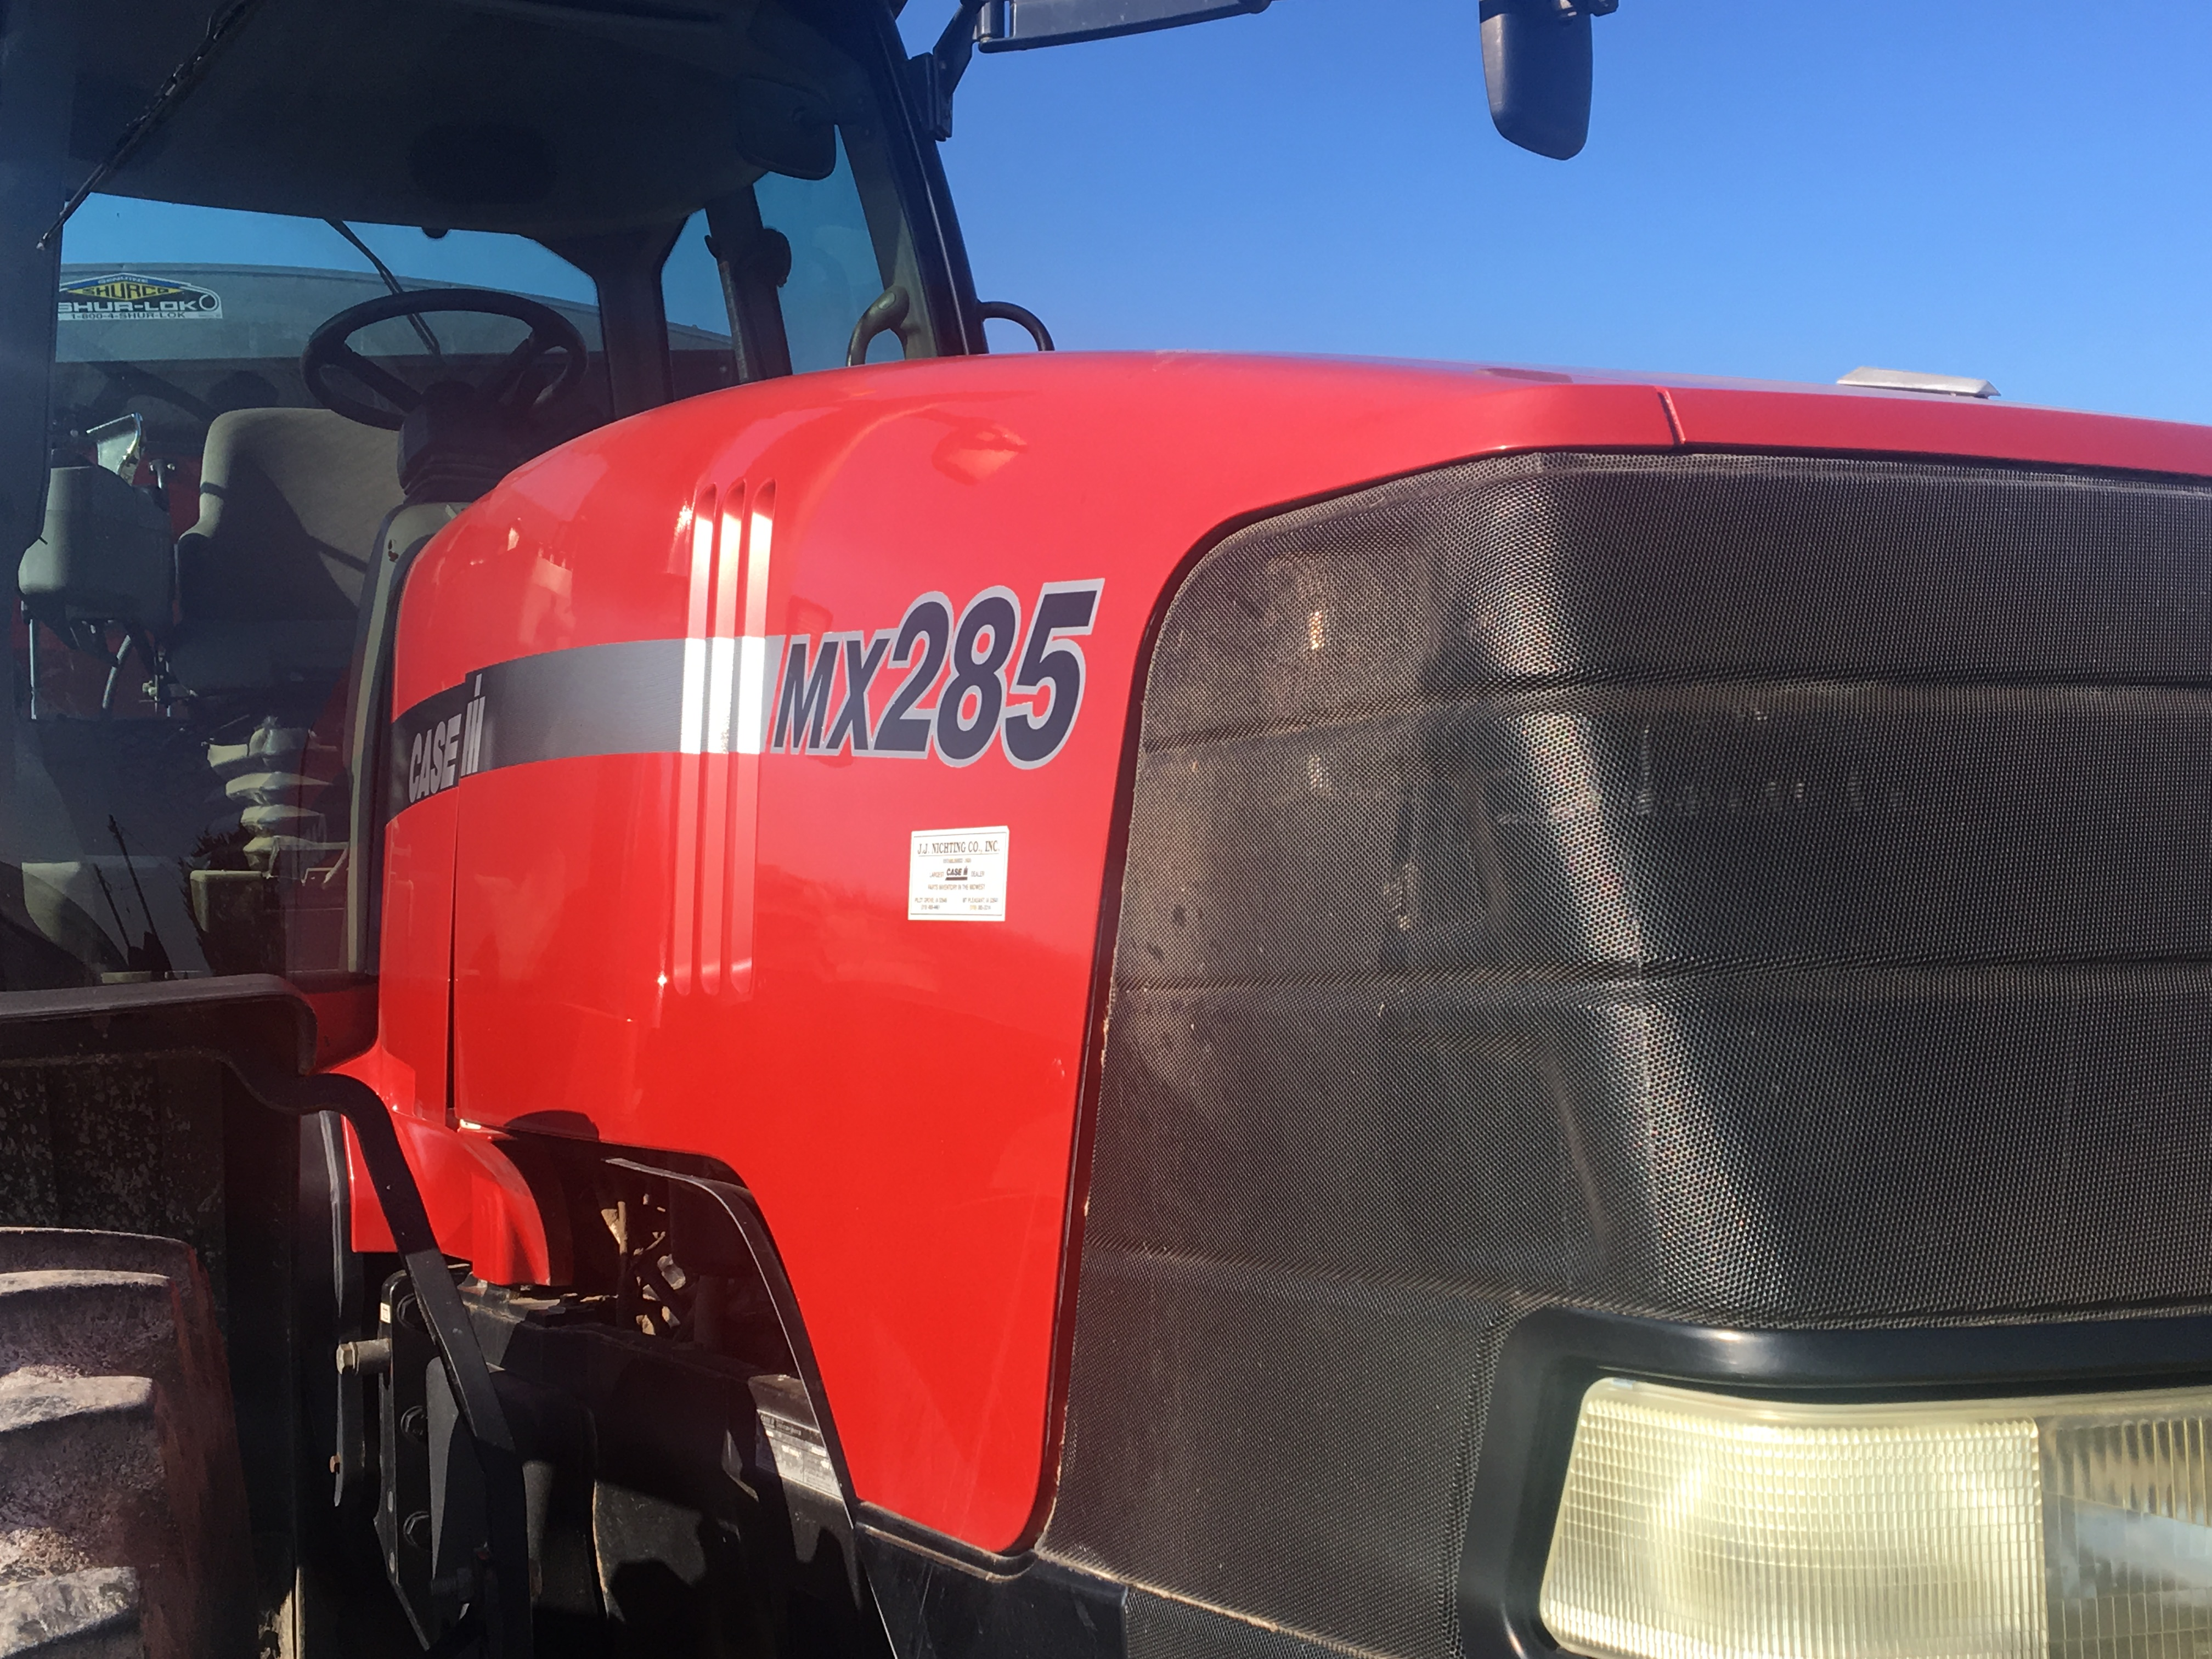 Lot 15 - 2003 Case IH MX285 4WD Cab Tractor